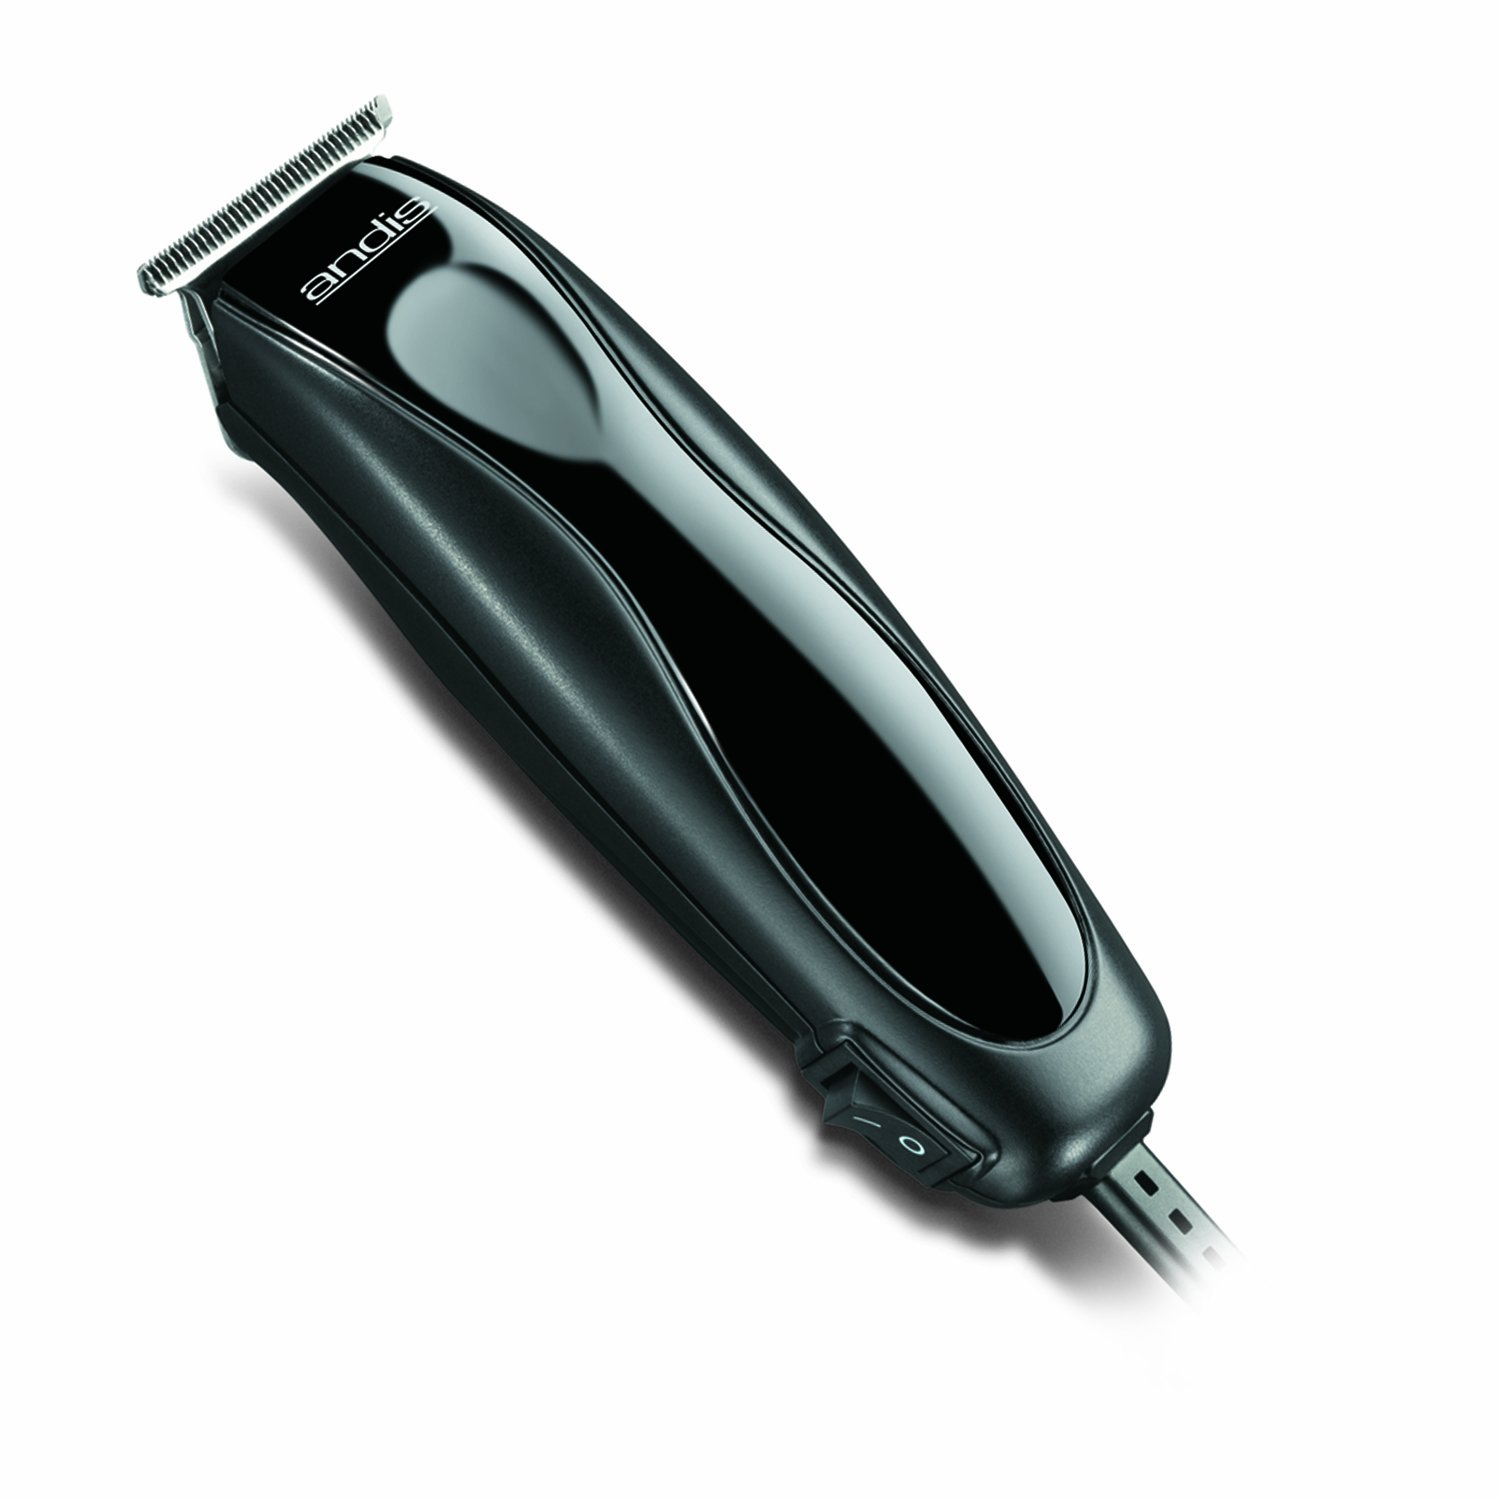 Andis Headliner 11-Piece Haircutting/Trimmer Kit (29775), Black by Andis